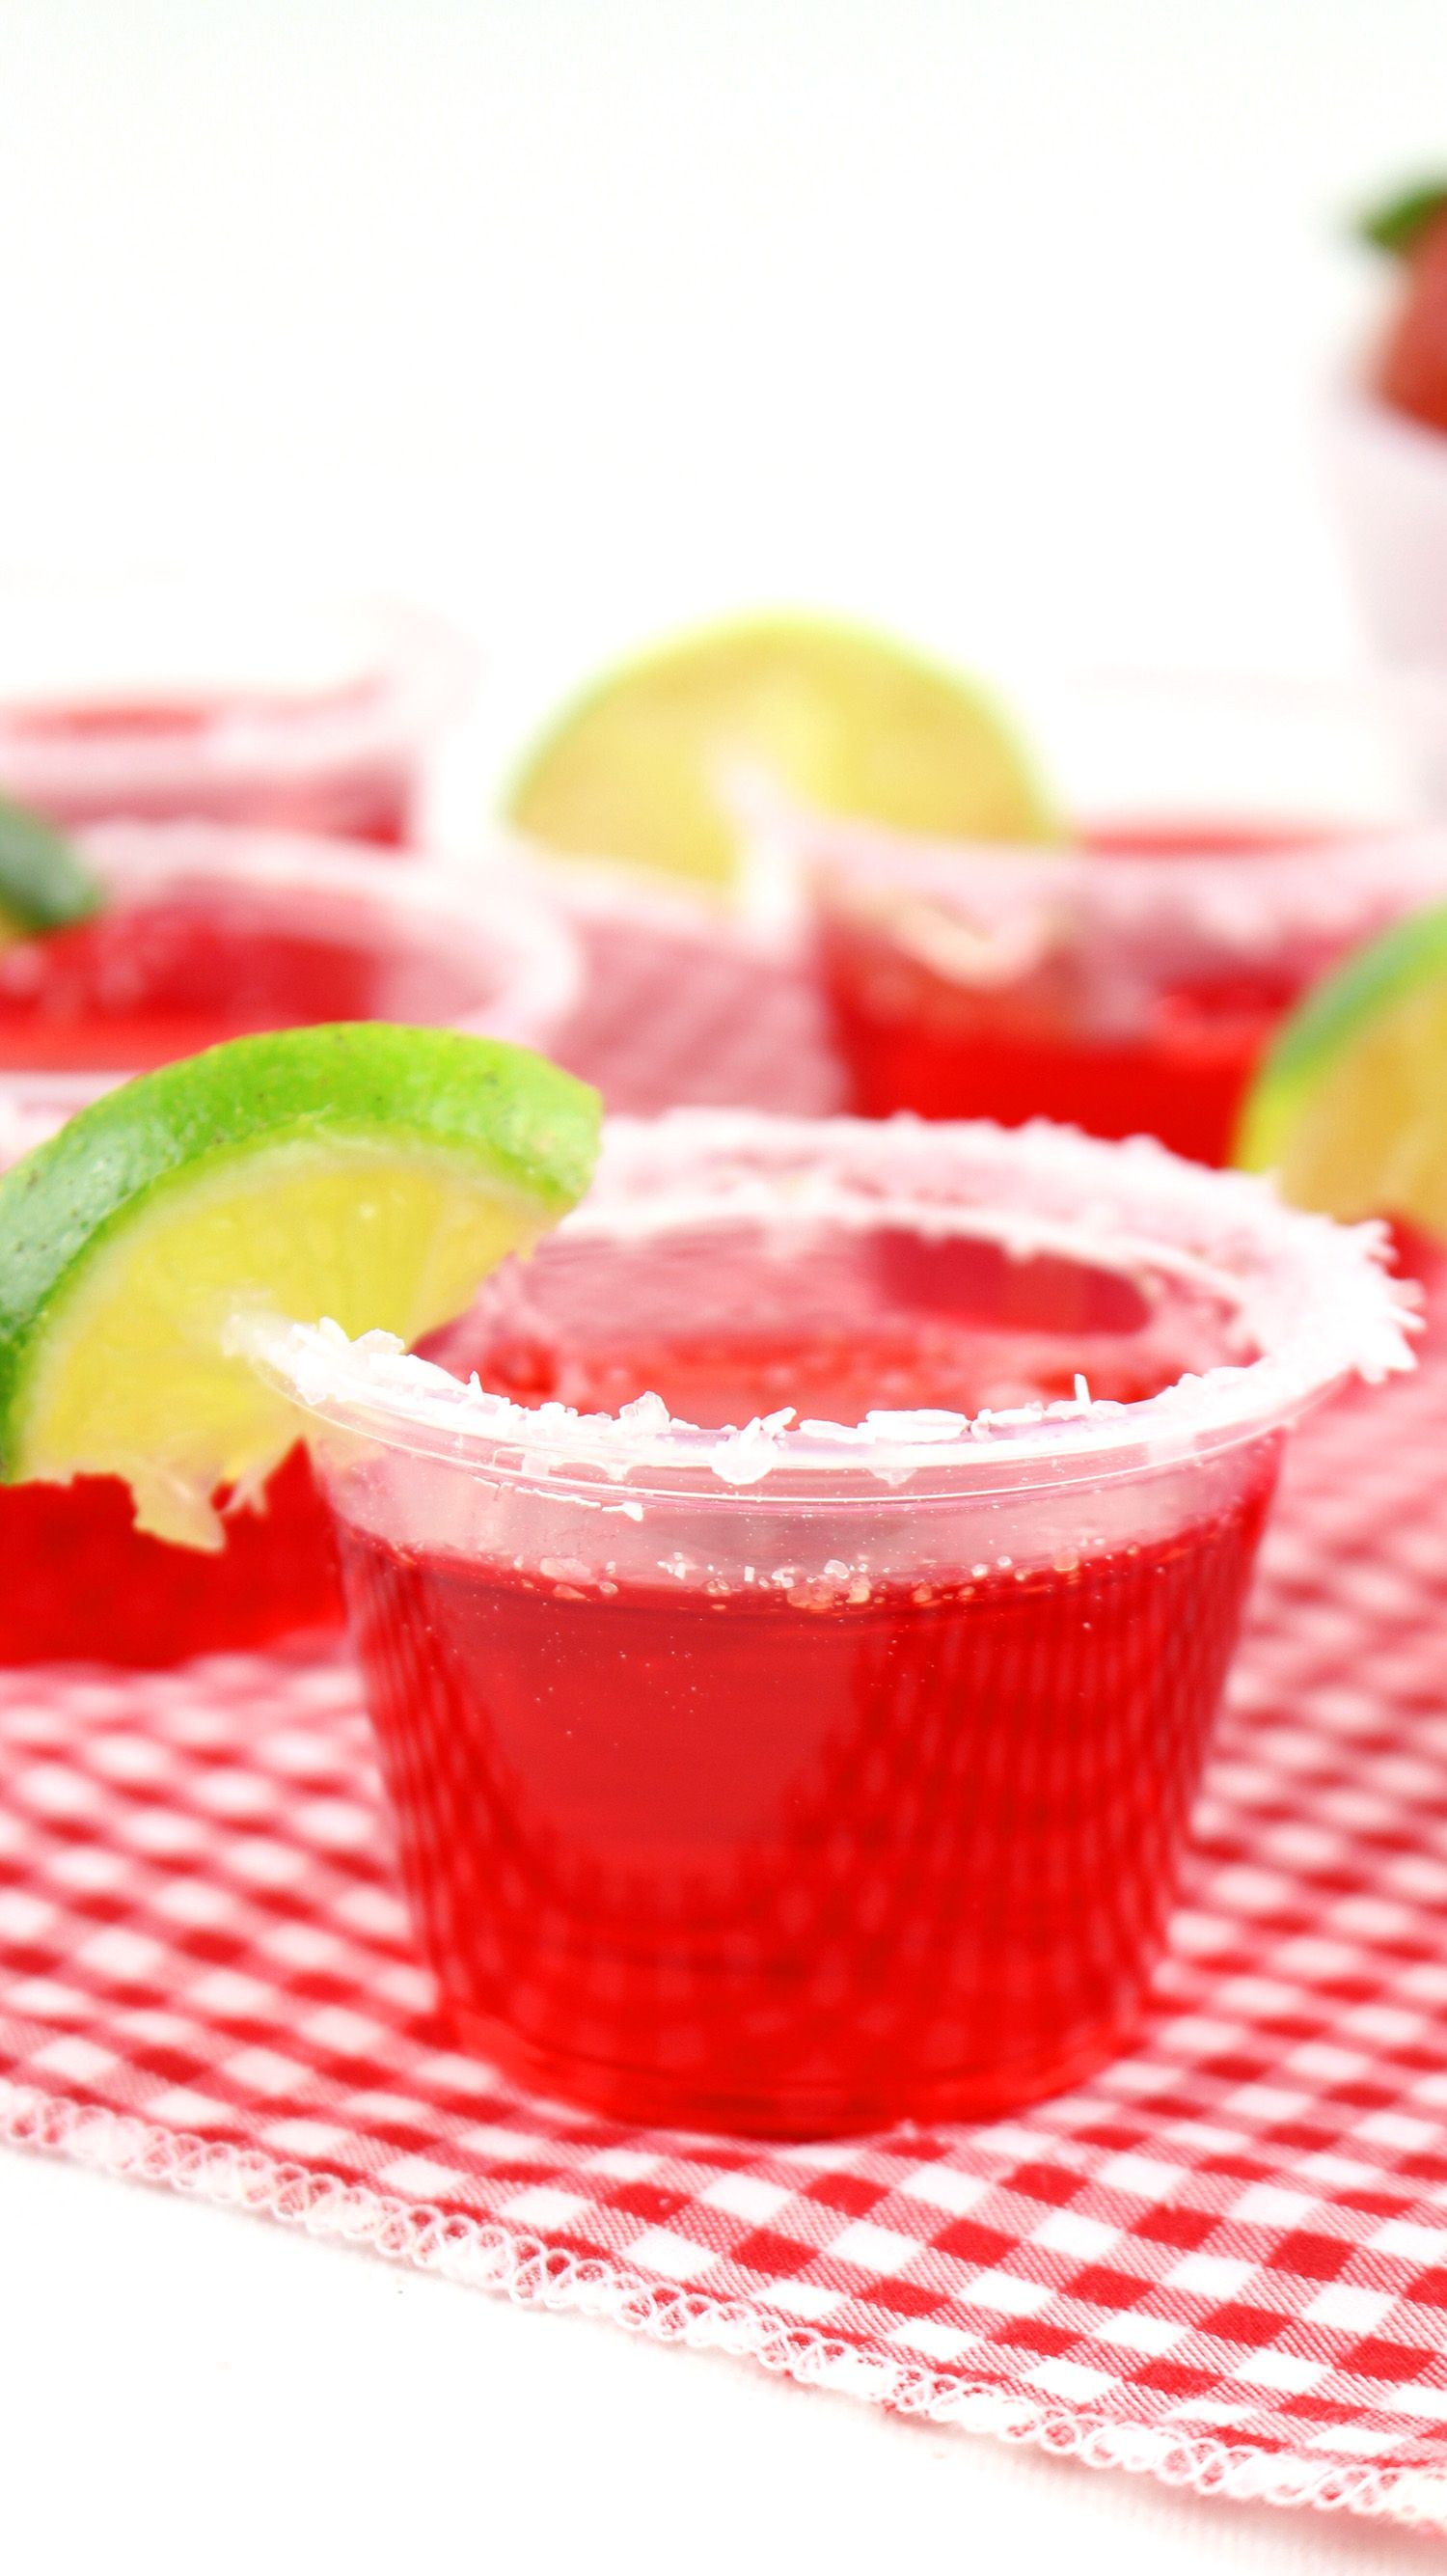 Strawberry Margarita Jello Shots With A Lime Garnish Margarita Jello Shots Strawberry Margarita Jello Shots Jello Shots